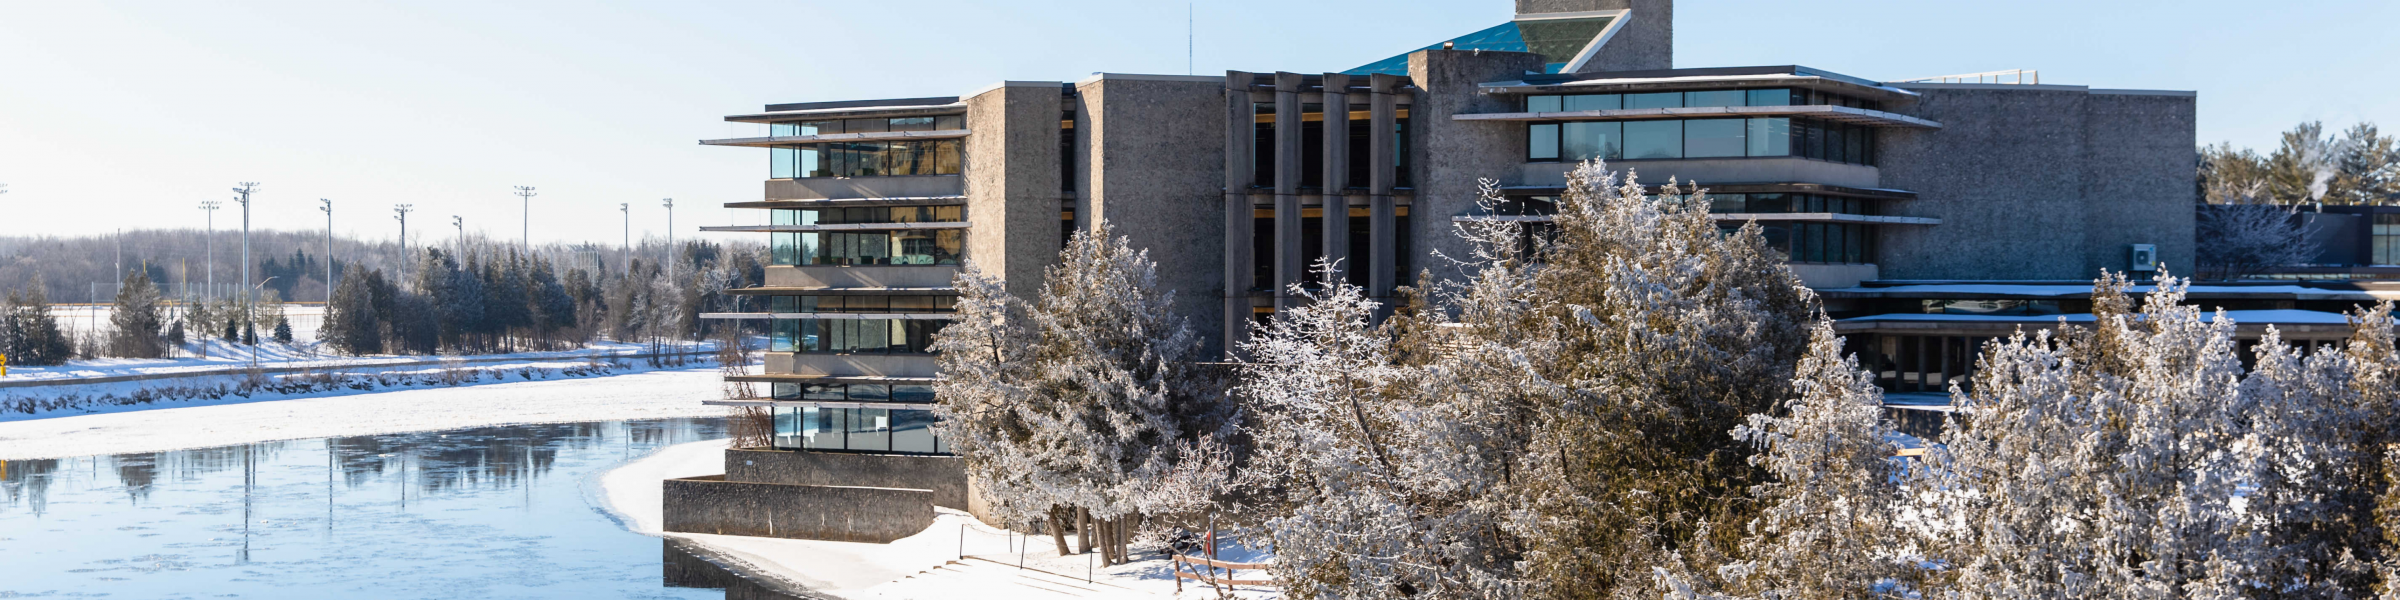 Bata Library view in winter